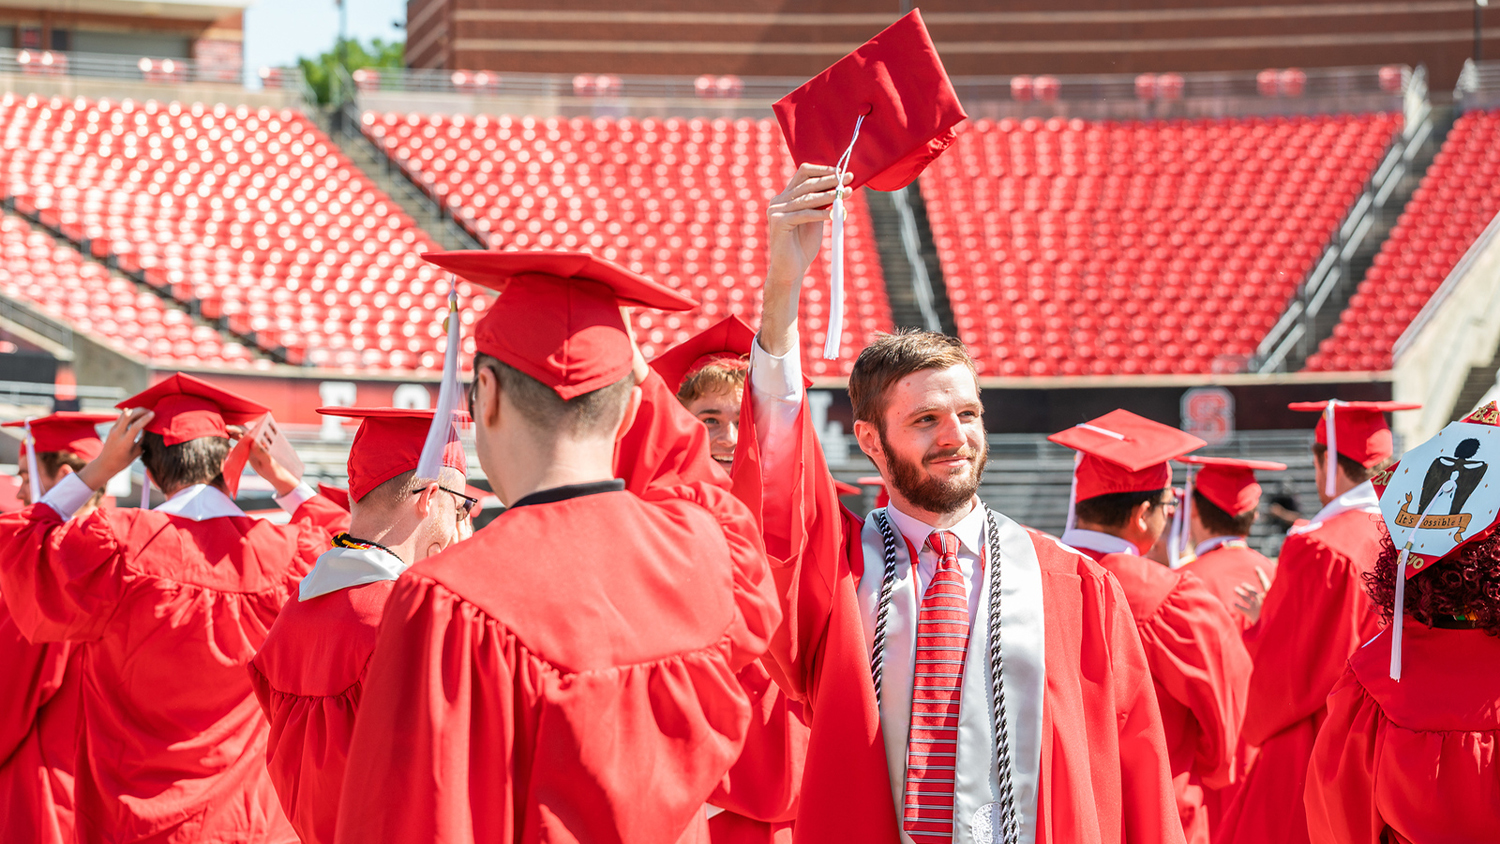 Among several graduates in red robes and hats, one male graduate holds his hat up in the air and smiles